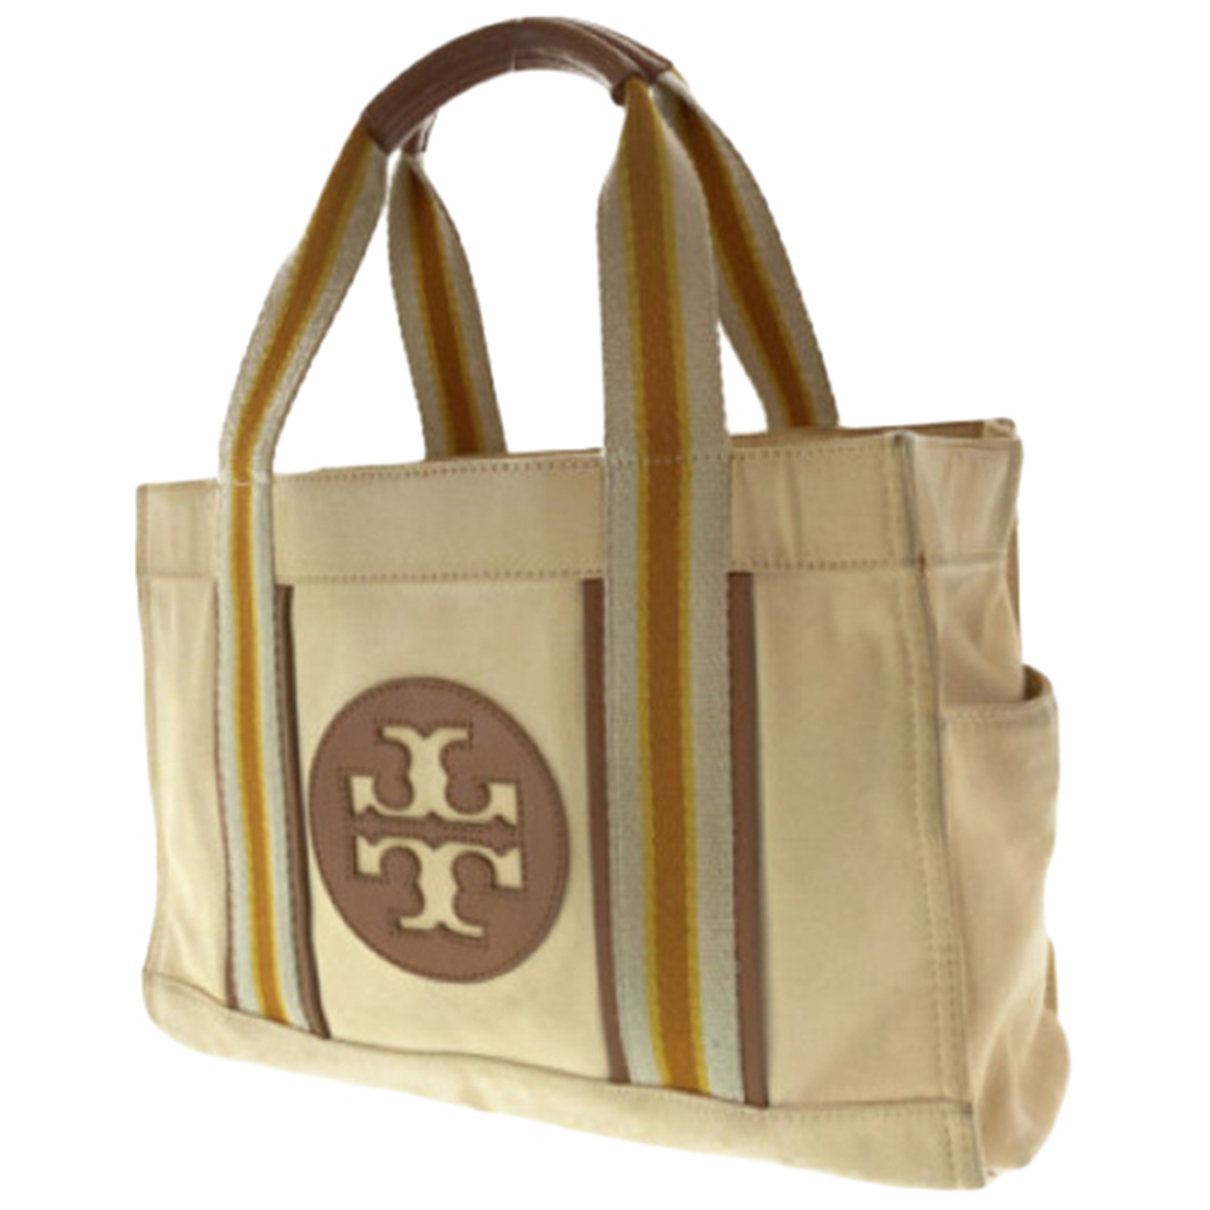 Tory Burch N Cloth handbag for Women N